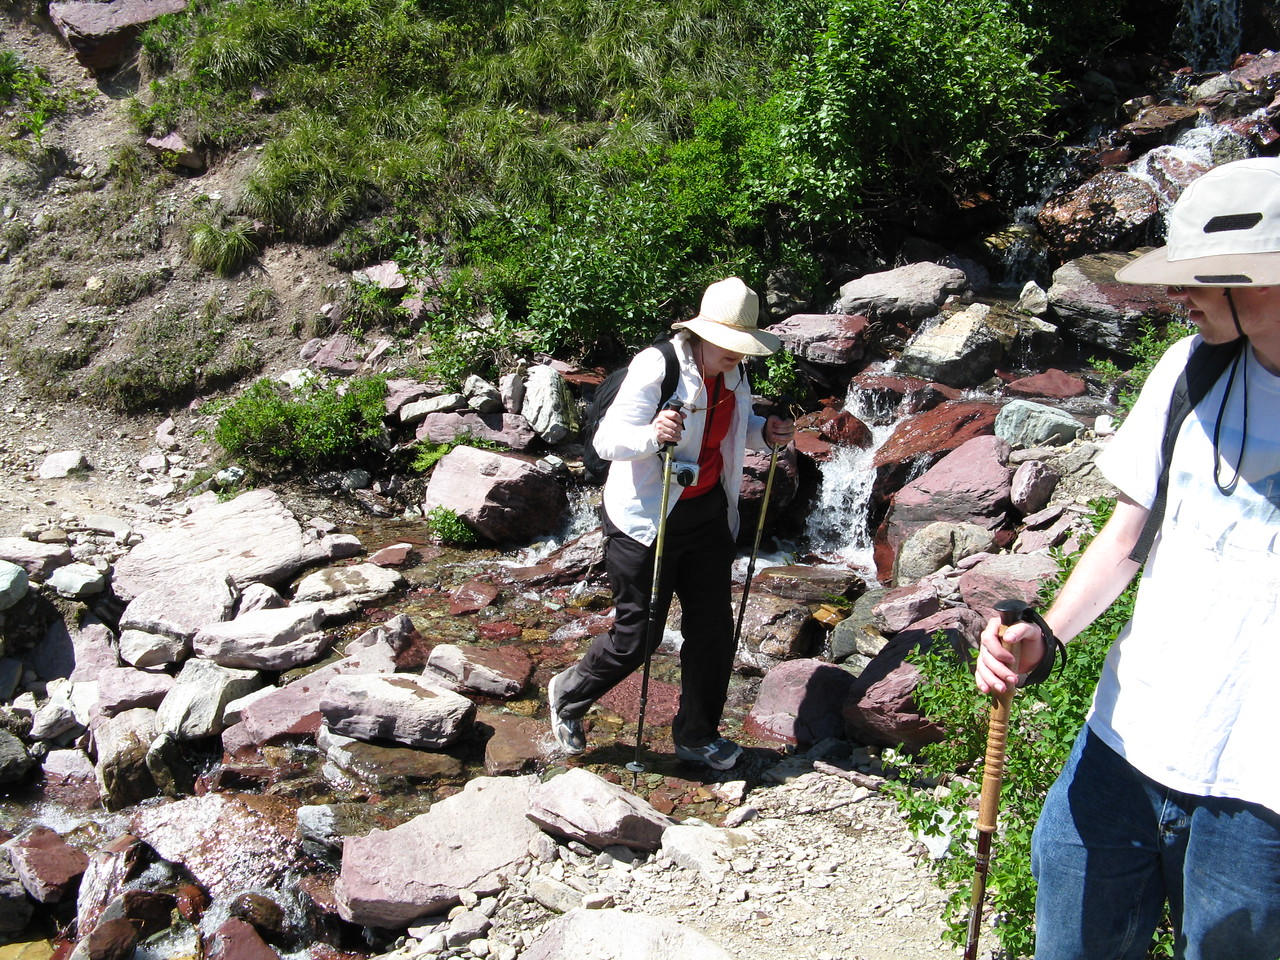 Mary crossing the creek.